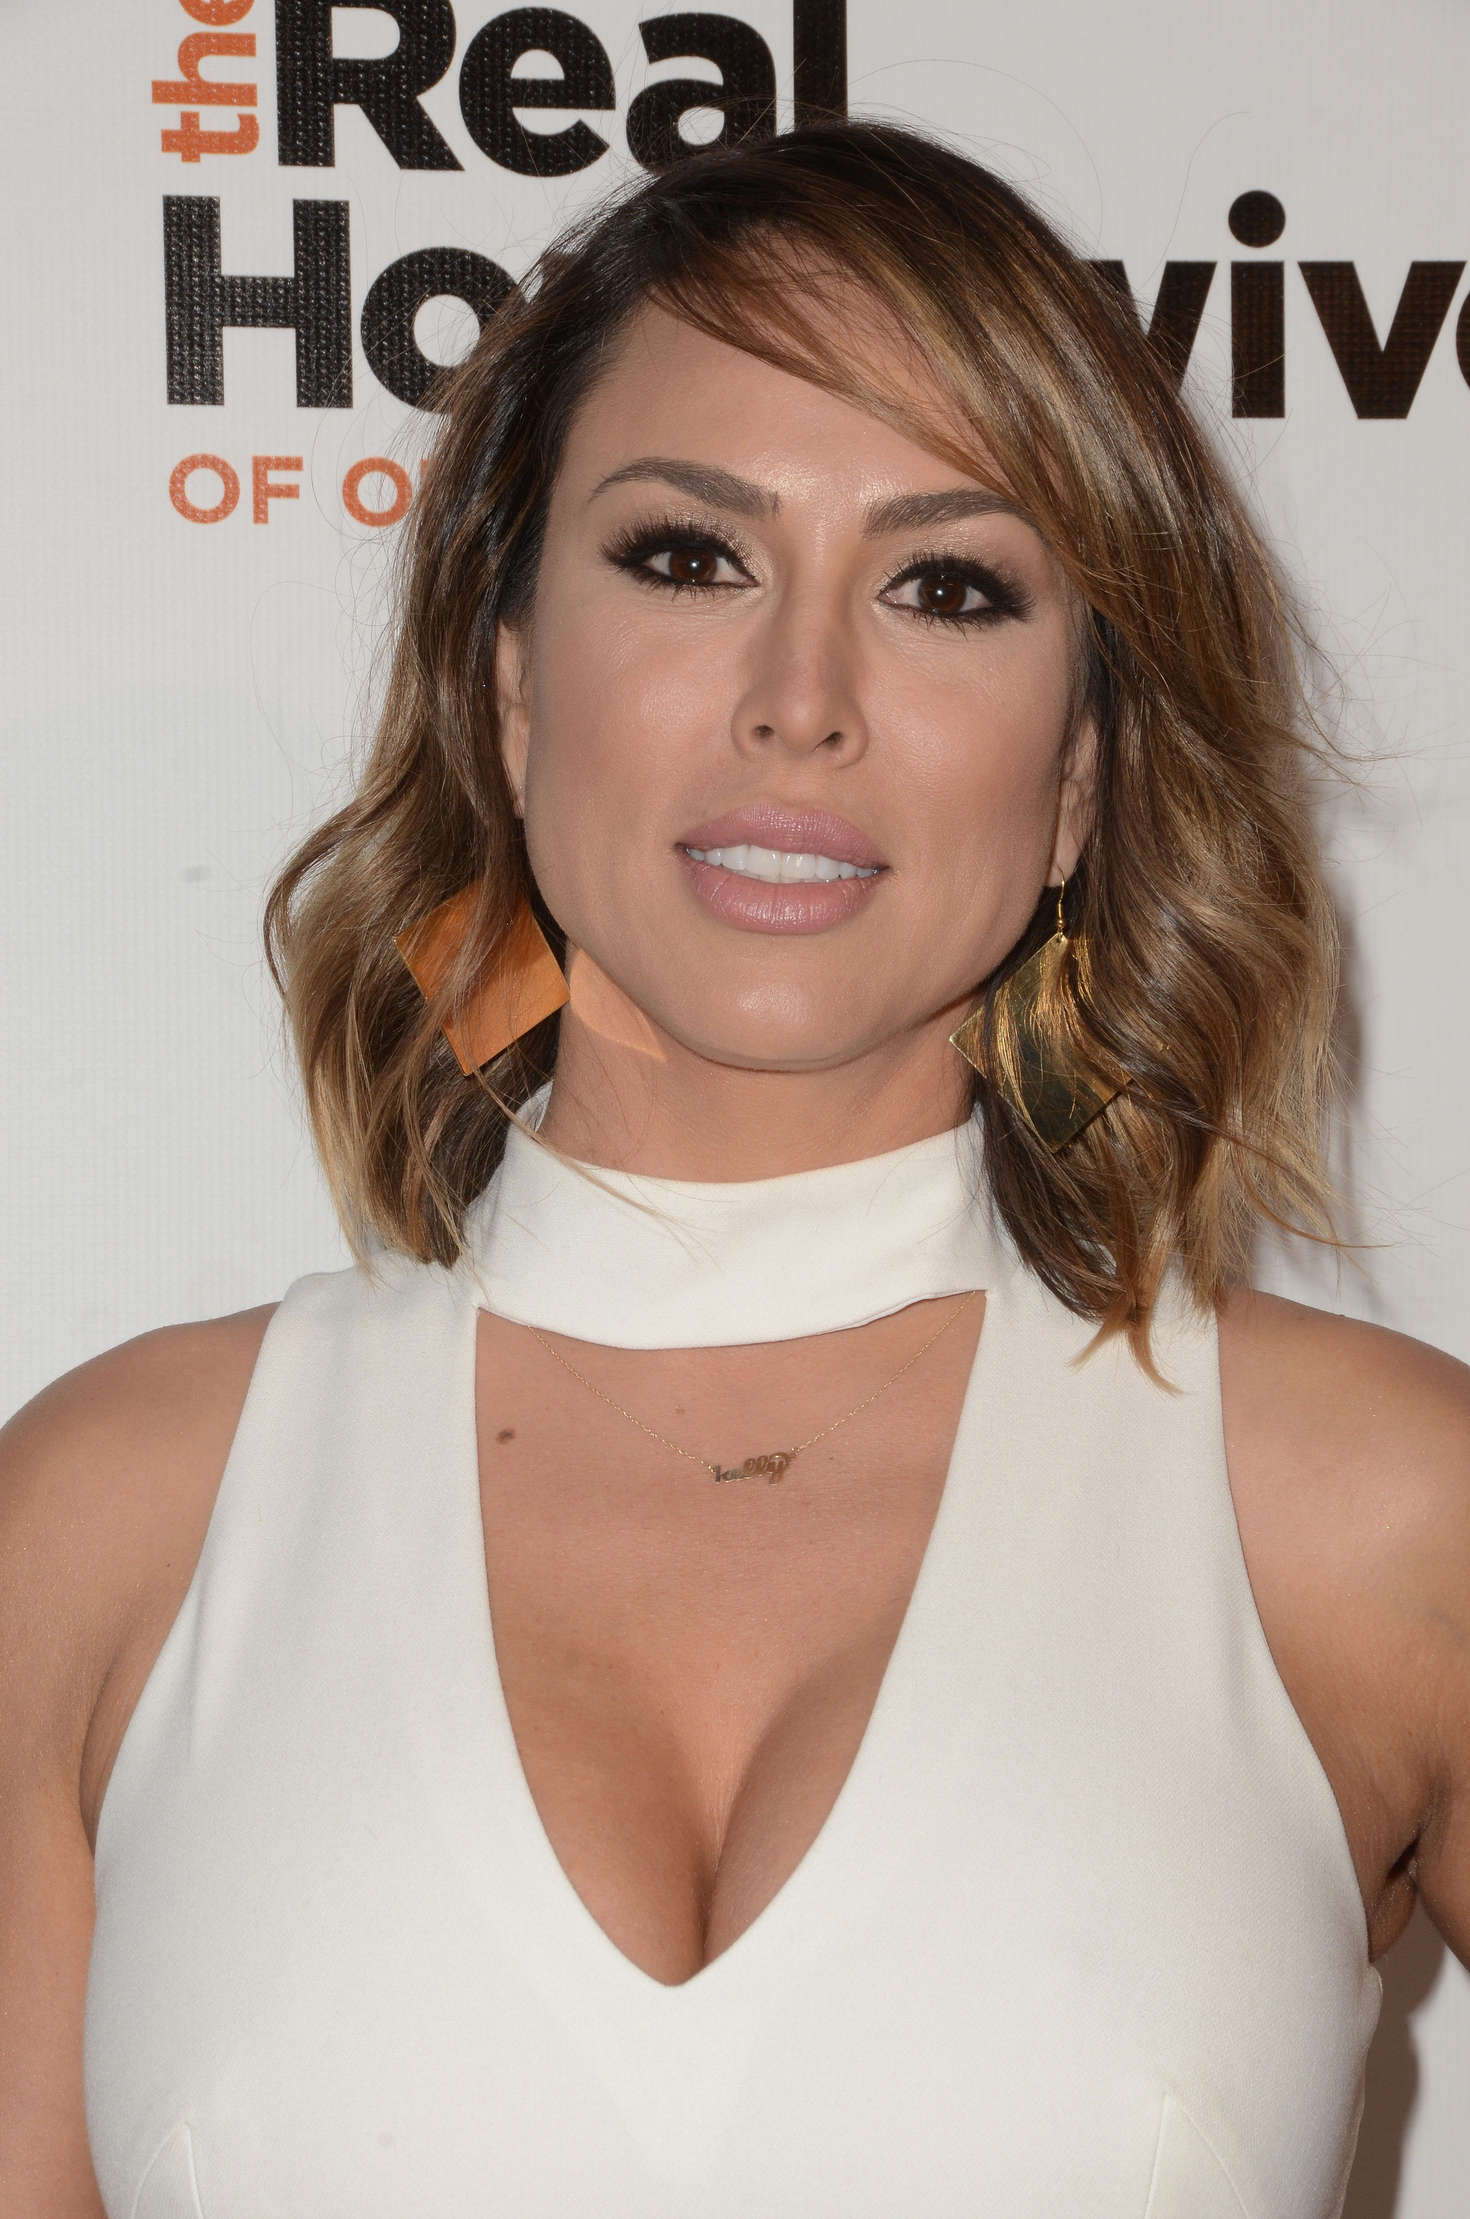 Kelly Dodd The Real Housewives Of Orange County Season